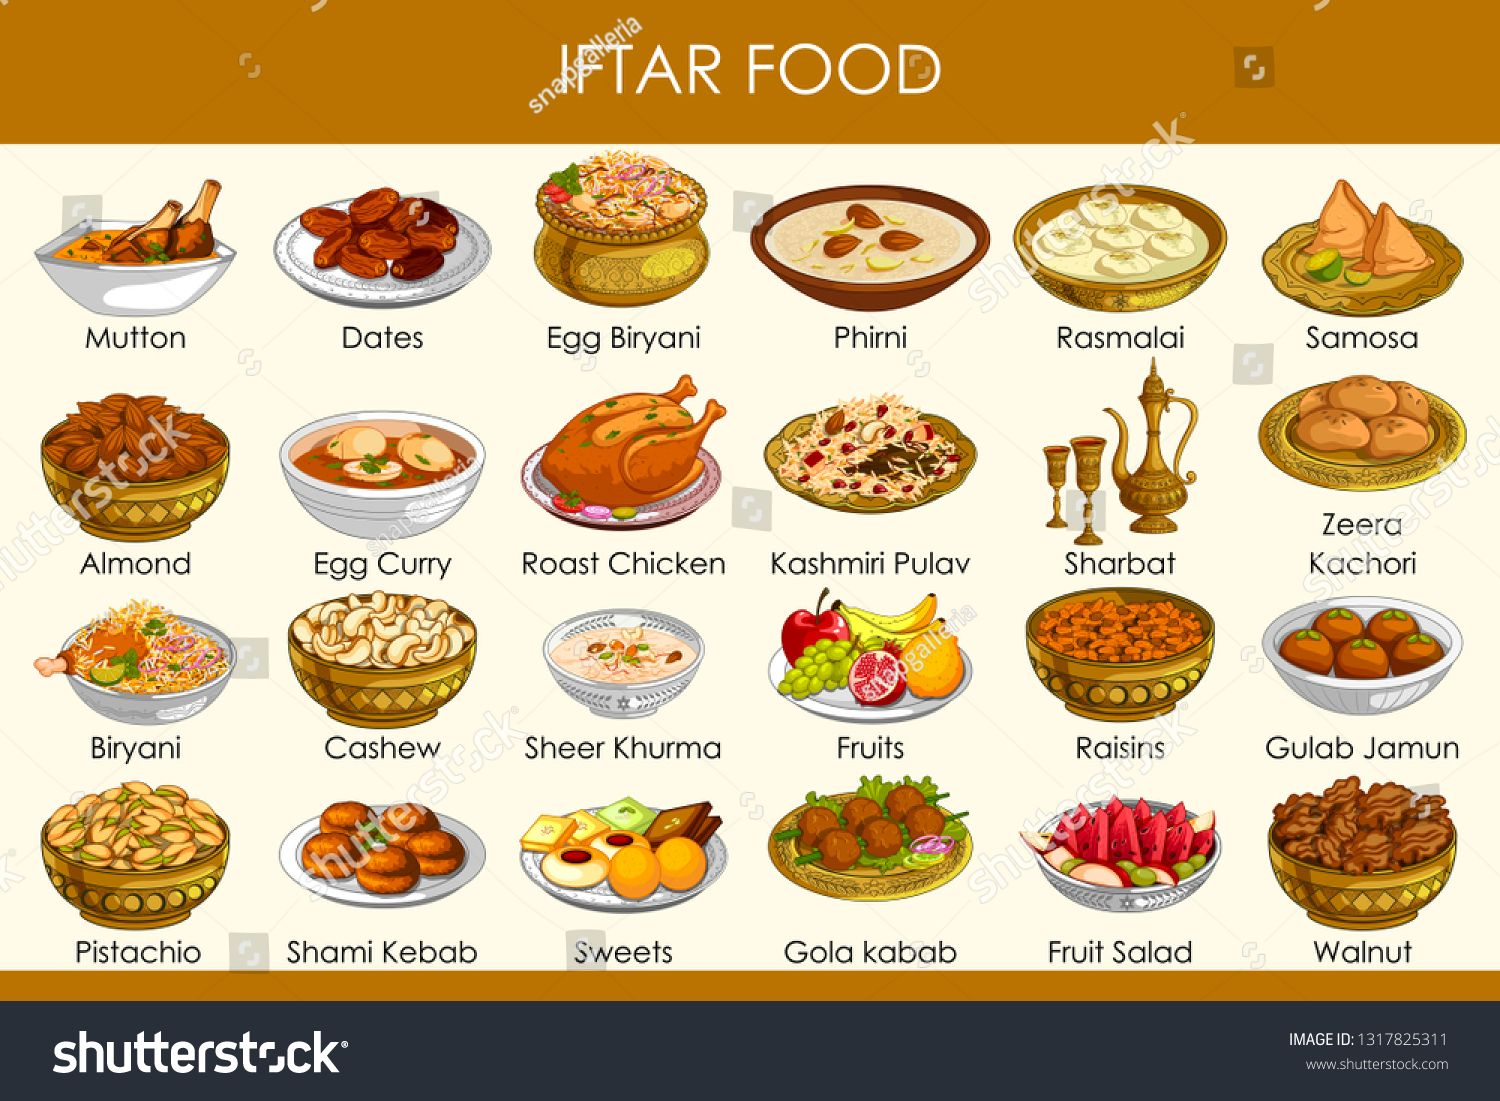 Easy To Edit Vector Illustration Of Different Delicious Food For